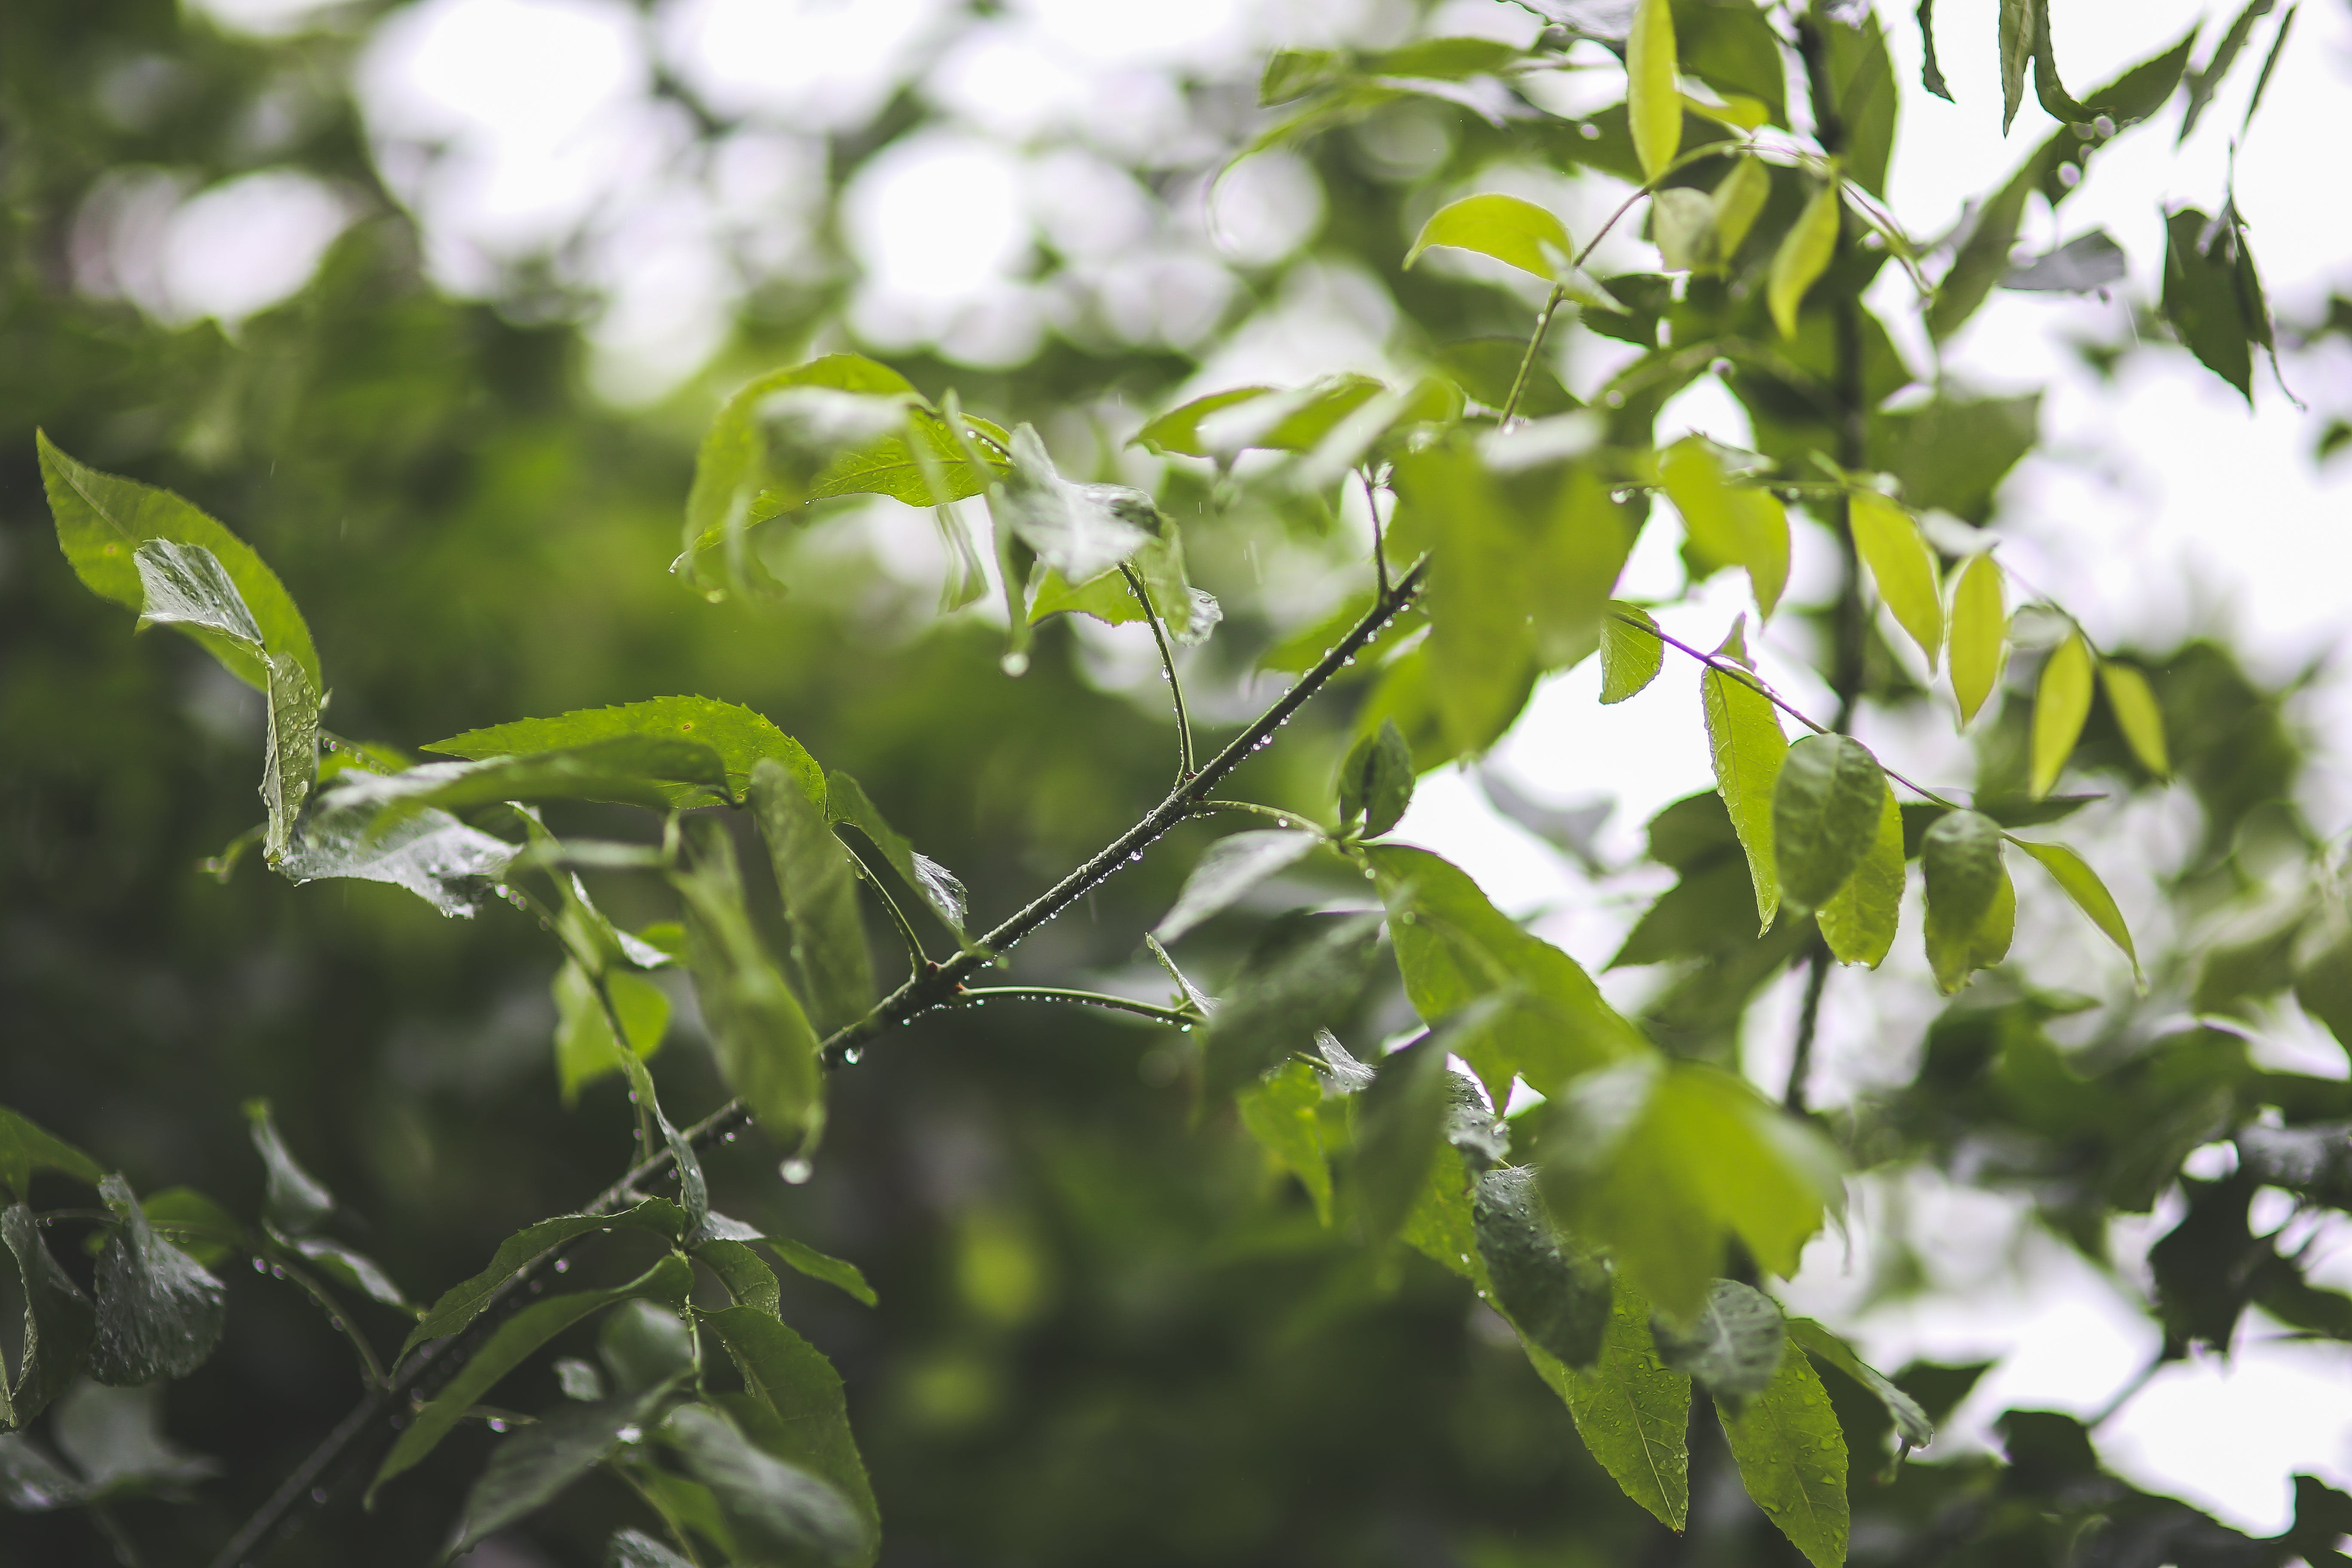 Drops of rain on a branch